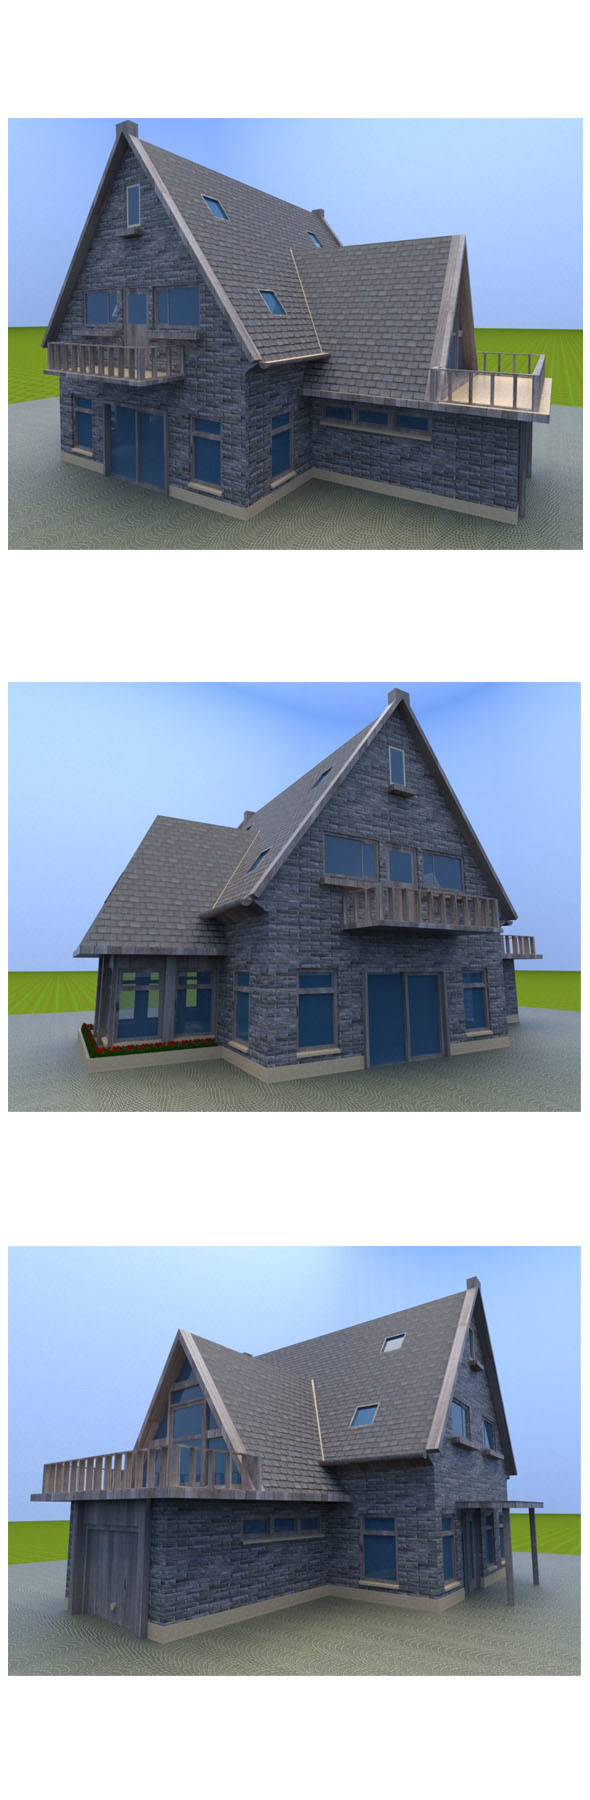 Old house design - 3DOcean Item for Sale